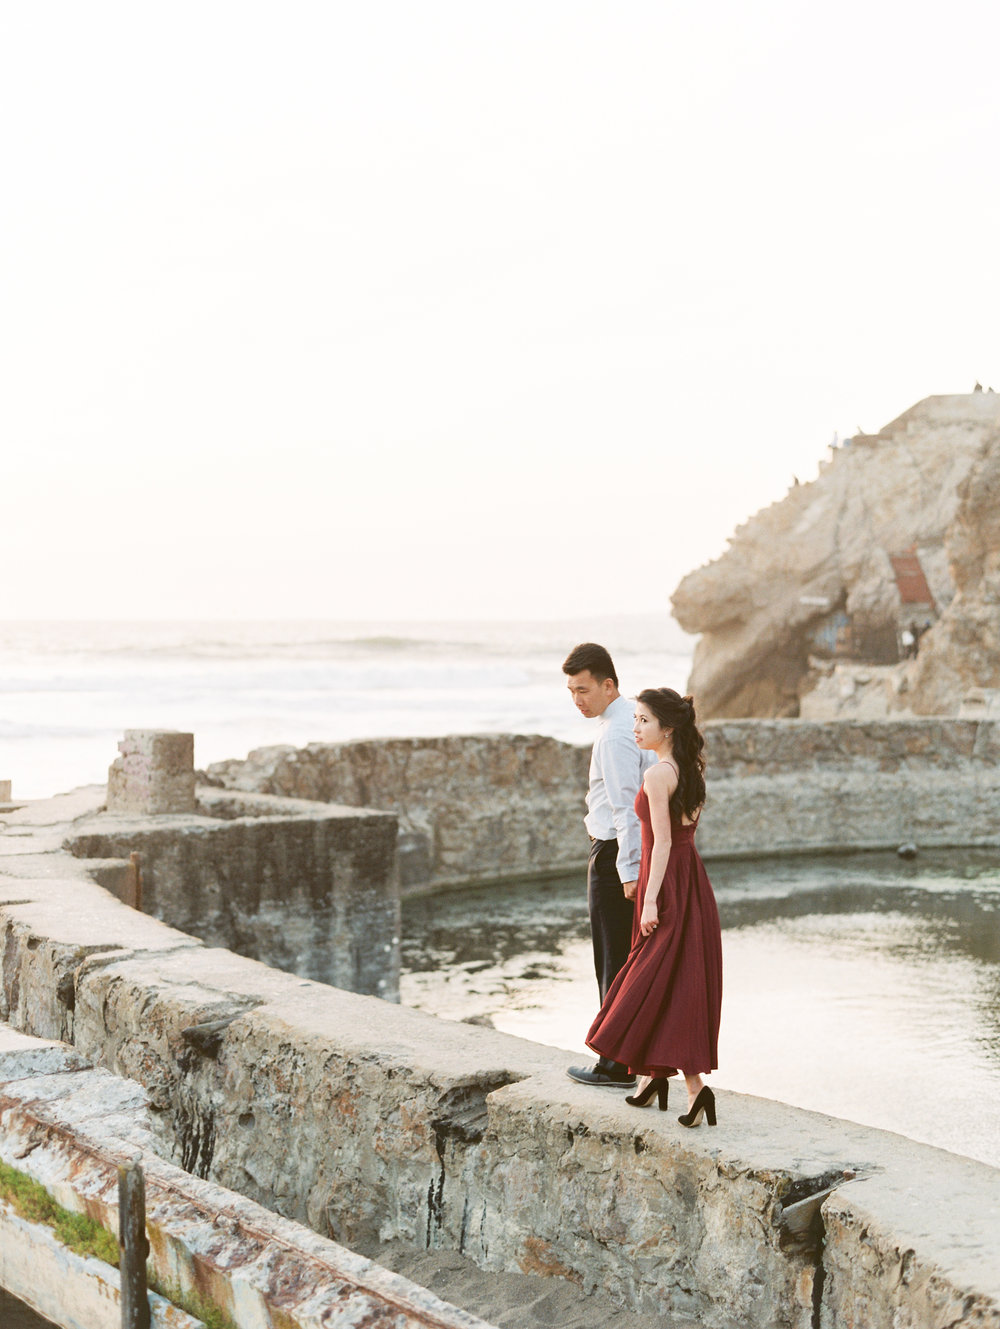 sutro-baths-san-francisco-engagement-39.jpg